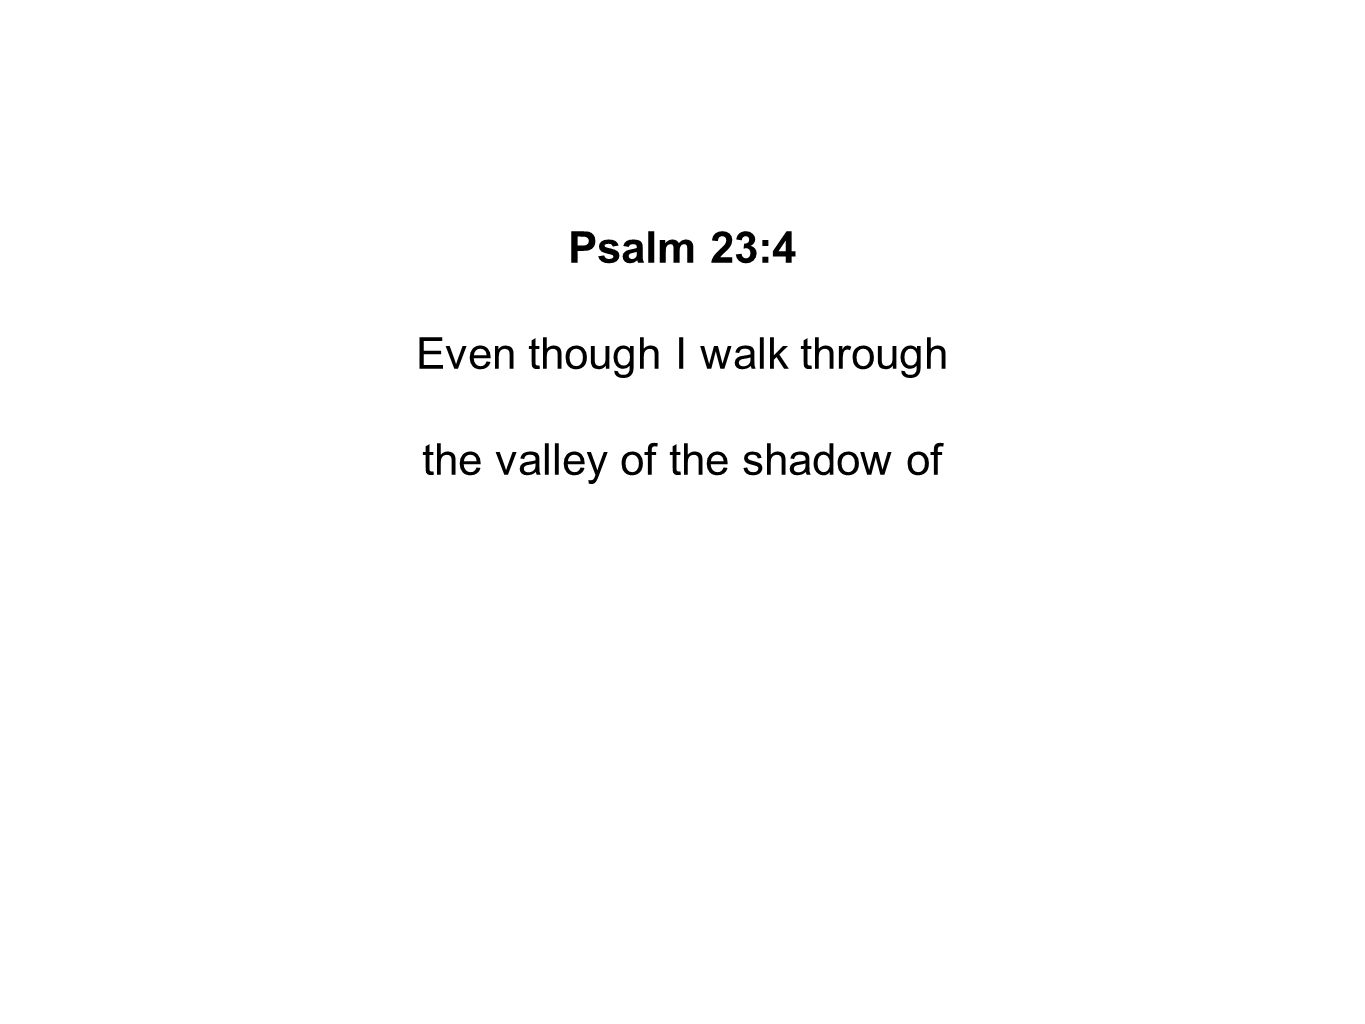 Psalm 23:4 Even though I walk through the valley of the shadow of